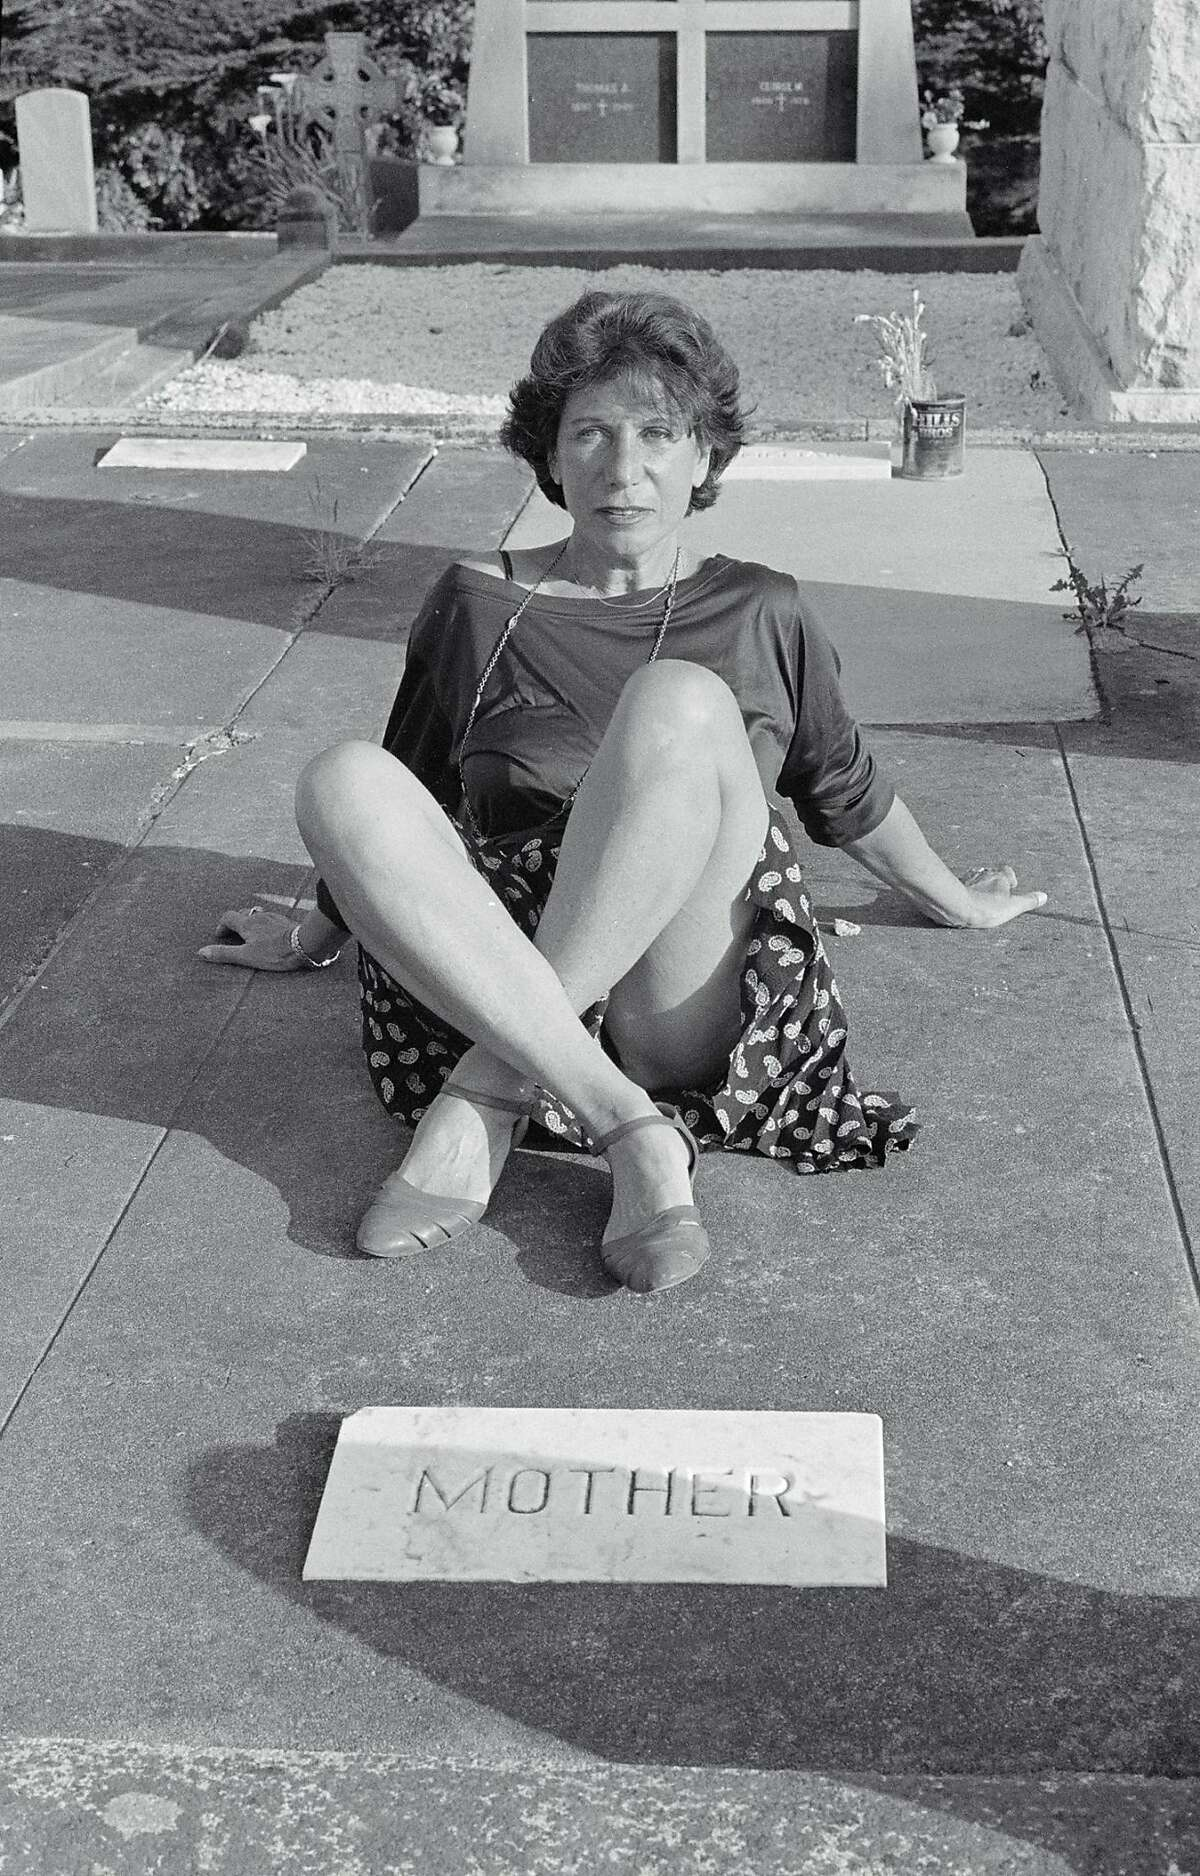 """Sophie Calle's """"Rachel Monique. Couldn't Capture Death"""" (2007, detail). """"She was successively called Rachel, Monique, Szyndler, Calle, Pagliero, Gonthier, Sindler. My mother liked to be the object of discussion. Her life did not appear in my work, and that annoyed her."""""""